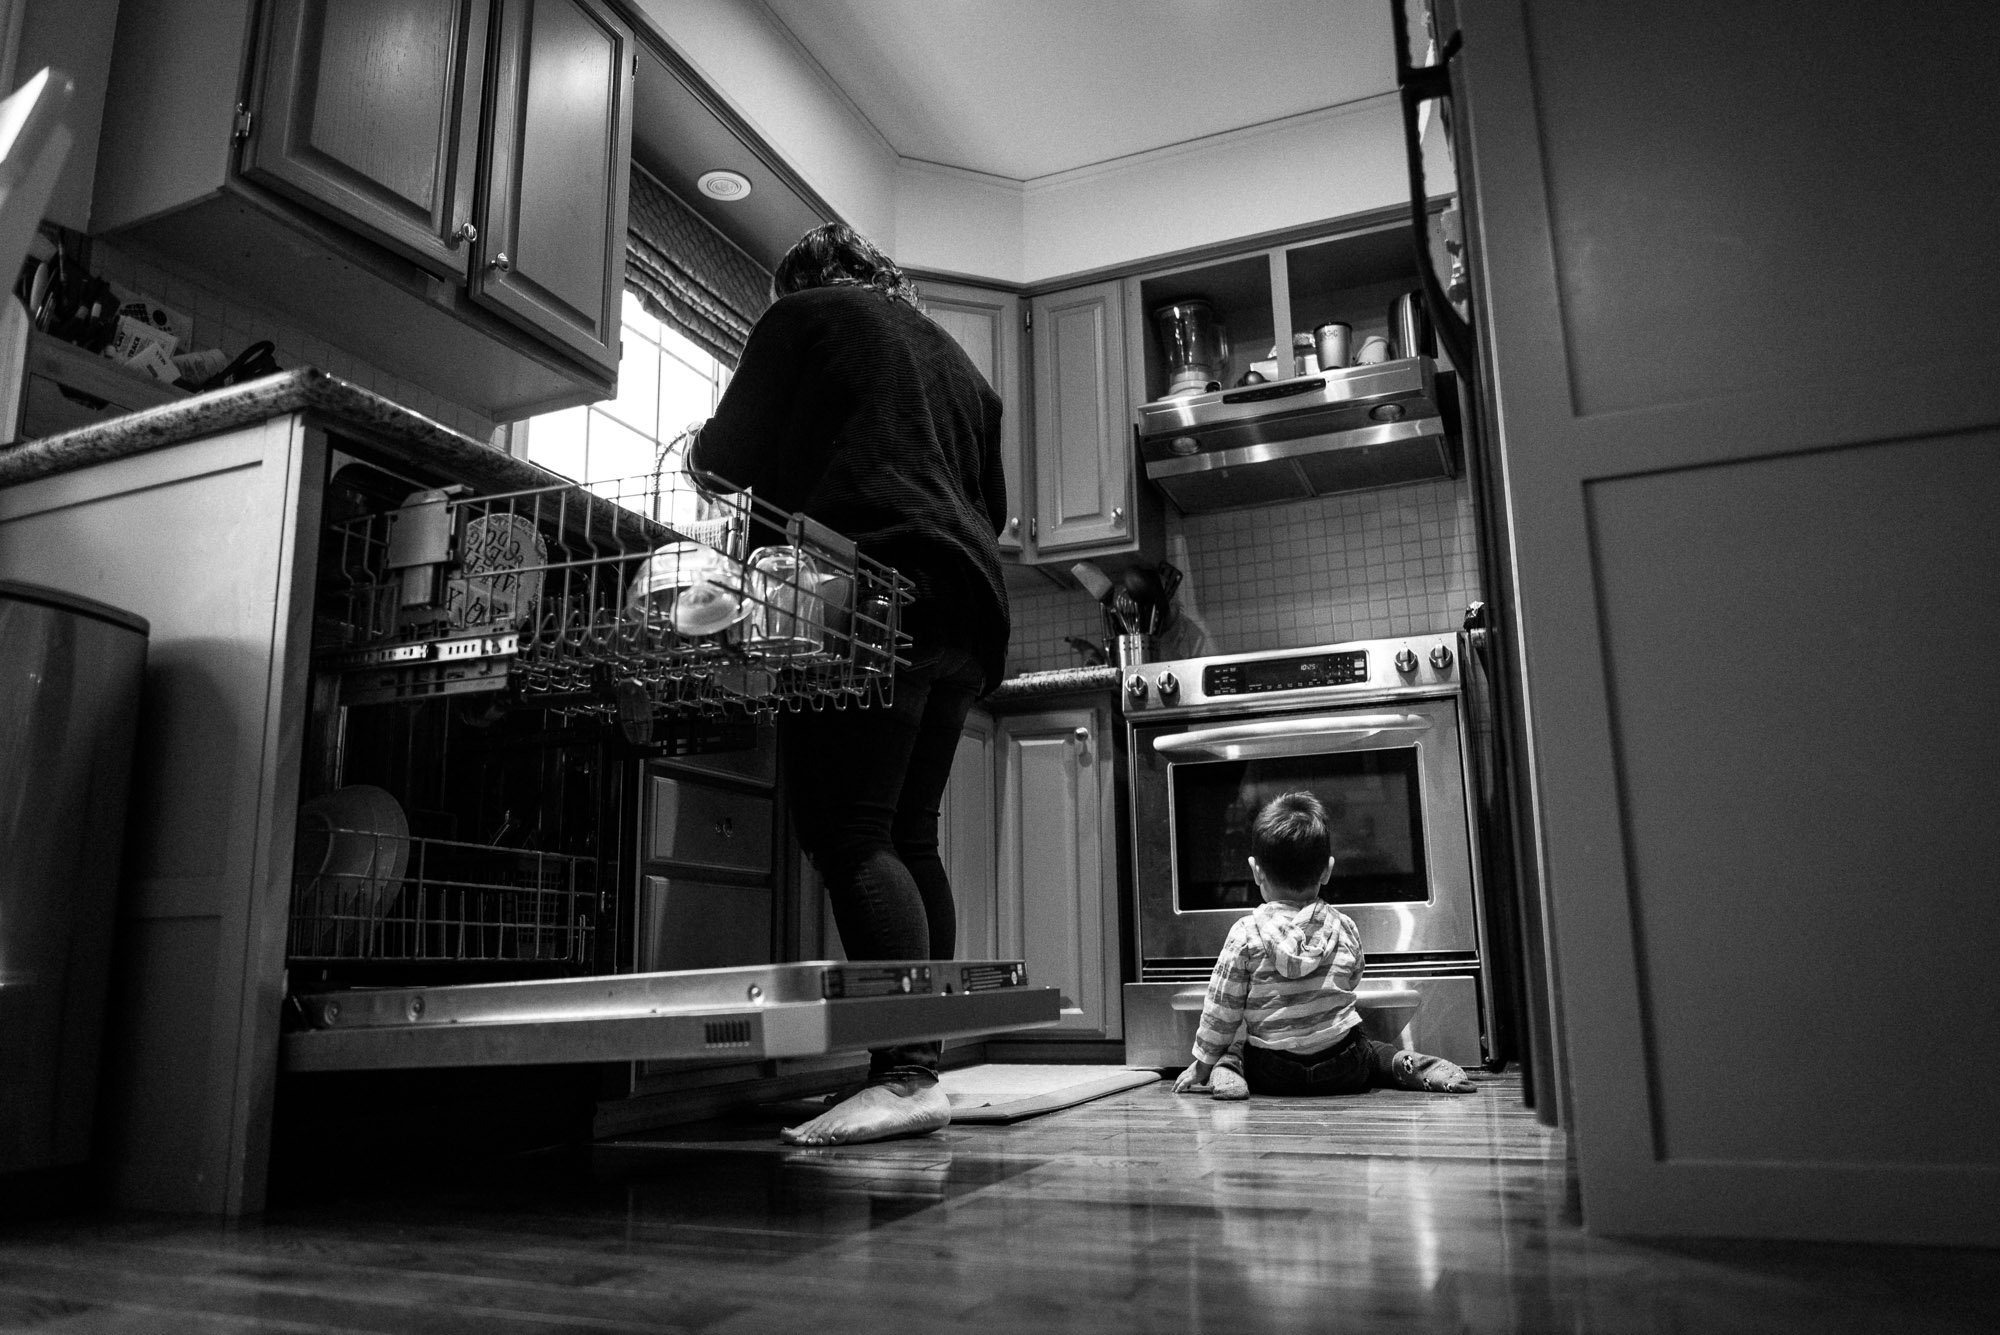 toddler plays on kitchen floor while mom cooks